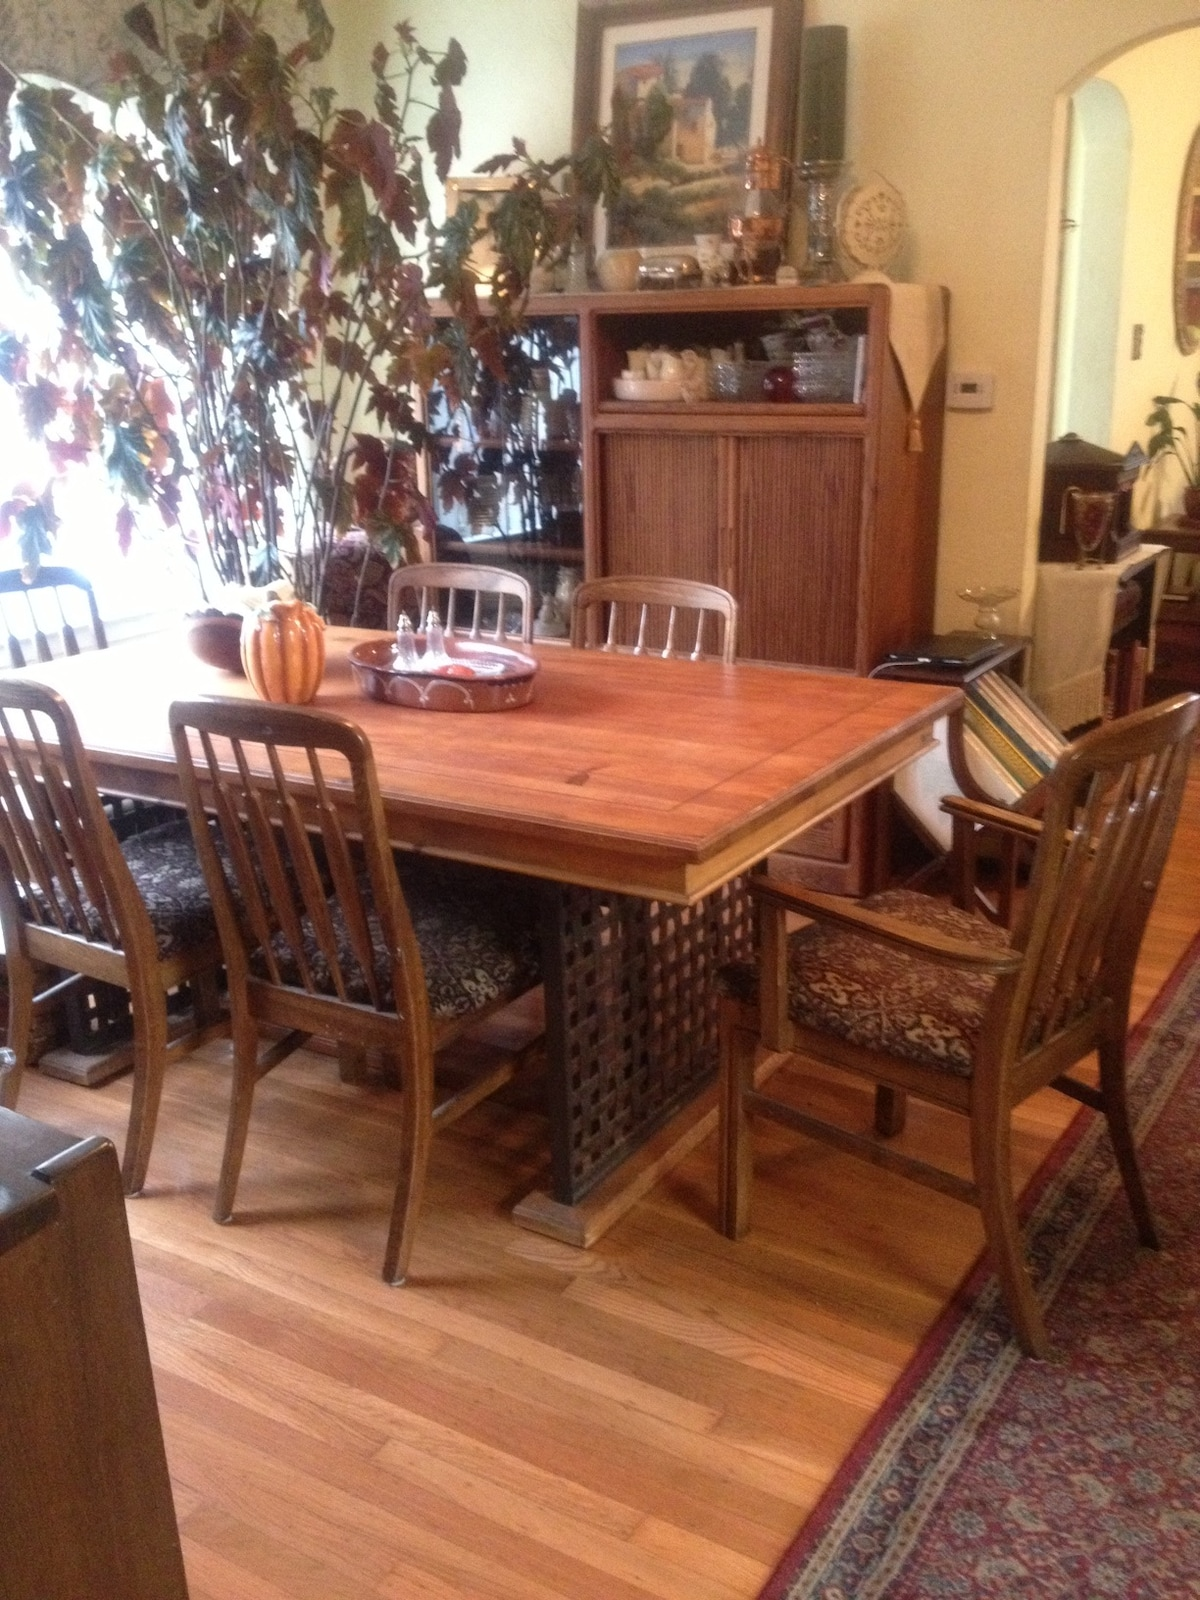 Dining room, kitchen and breakfast room are comfortable and well-equipped.